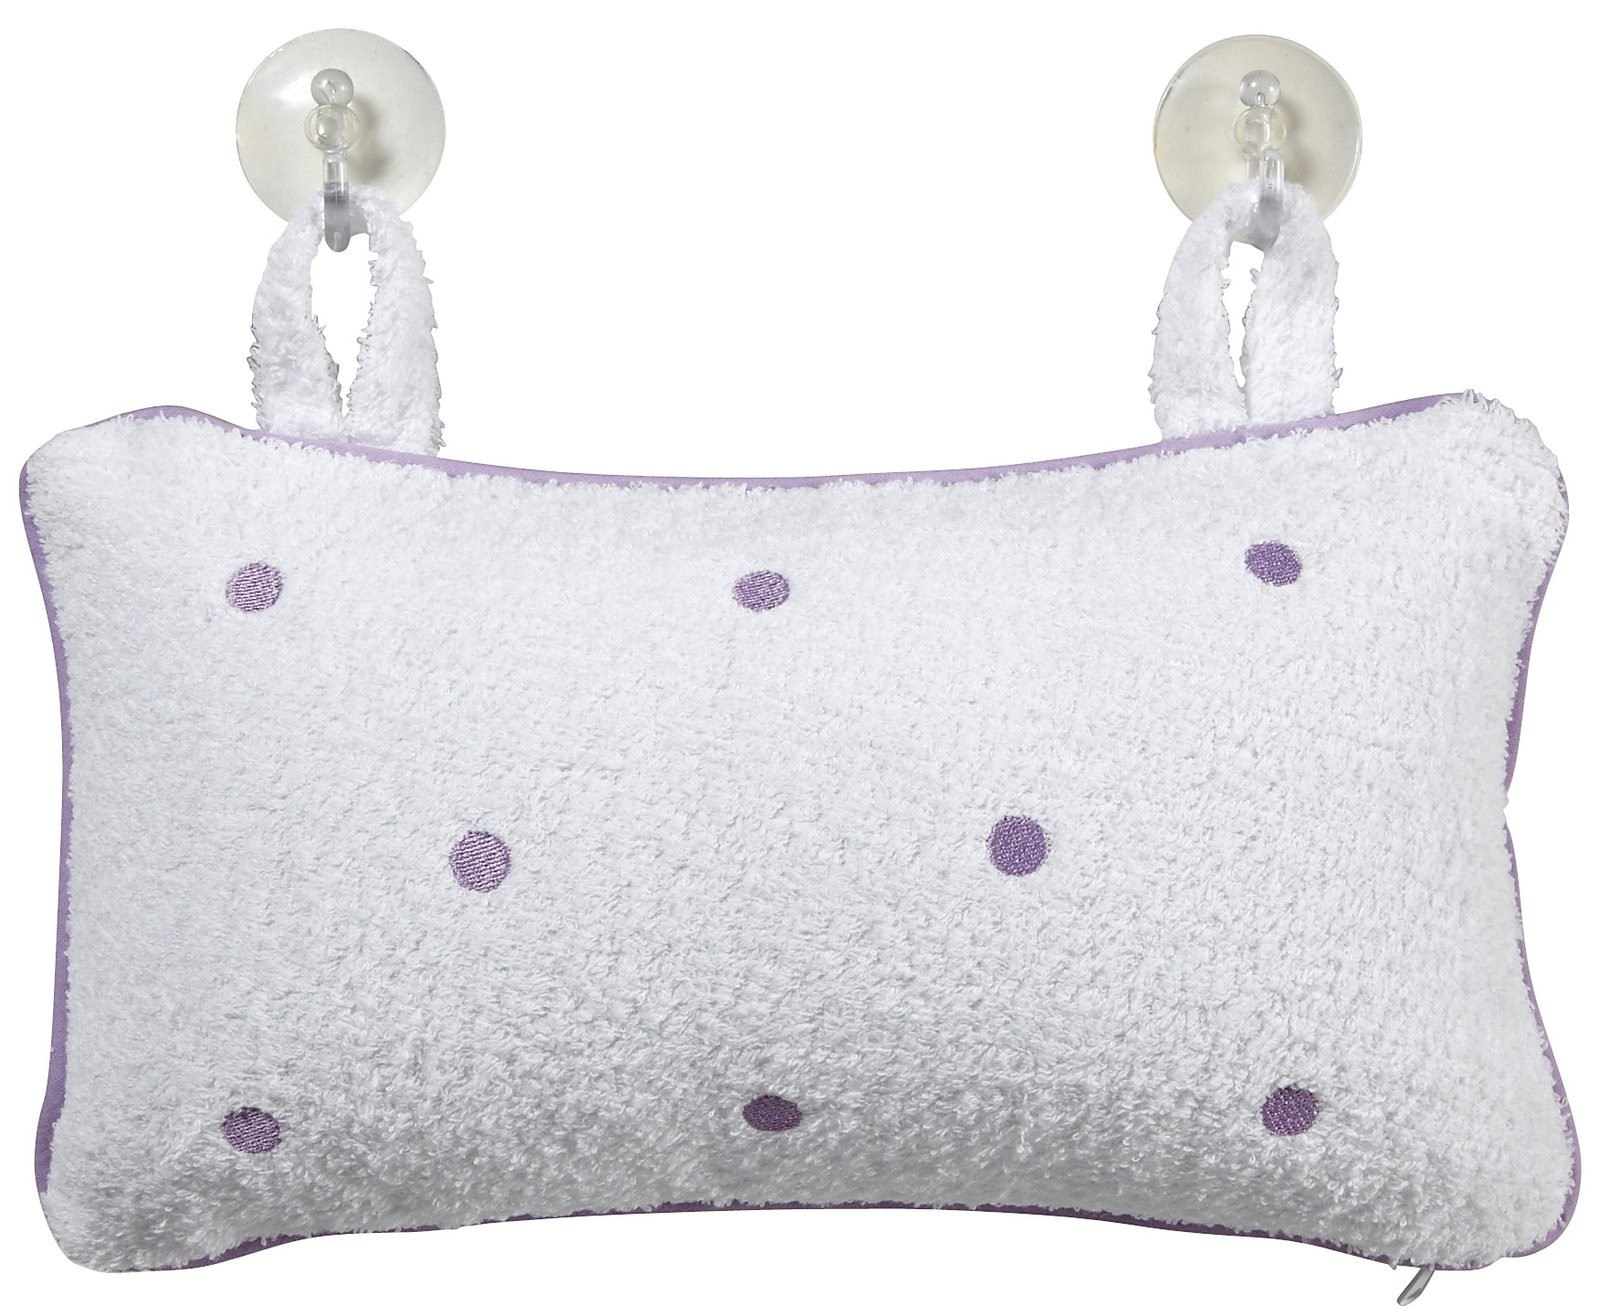 Luxury Bath Pillow Set